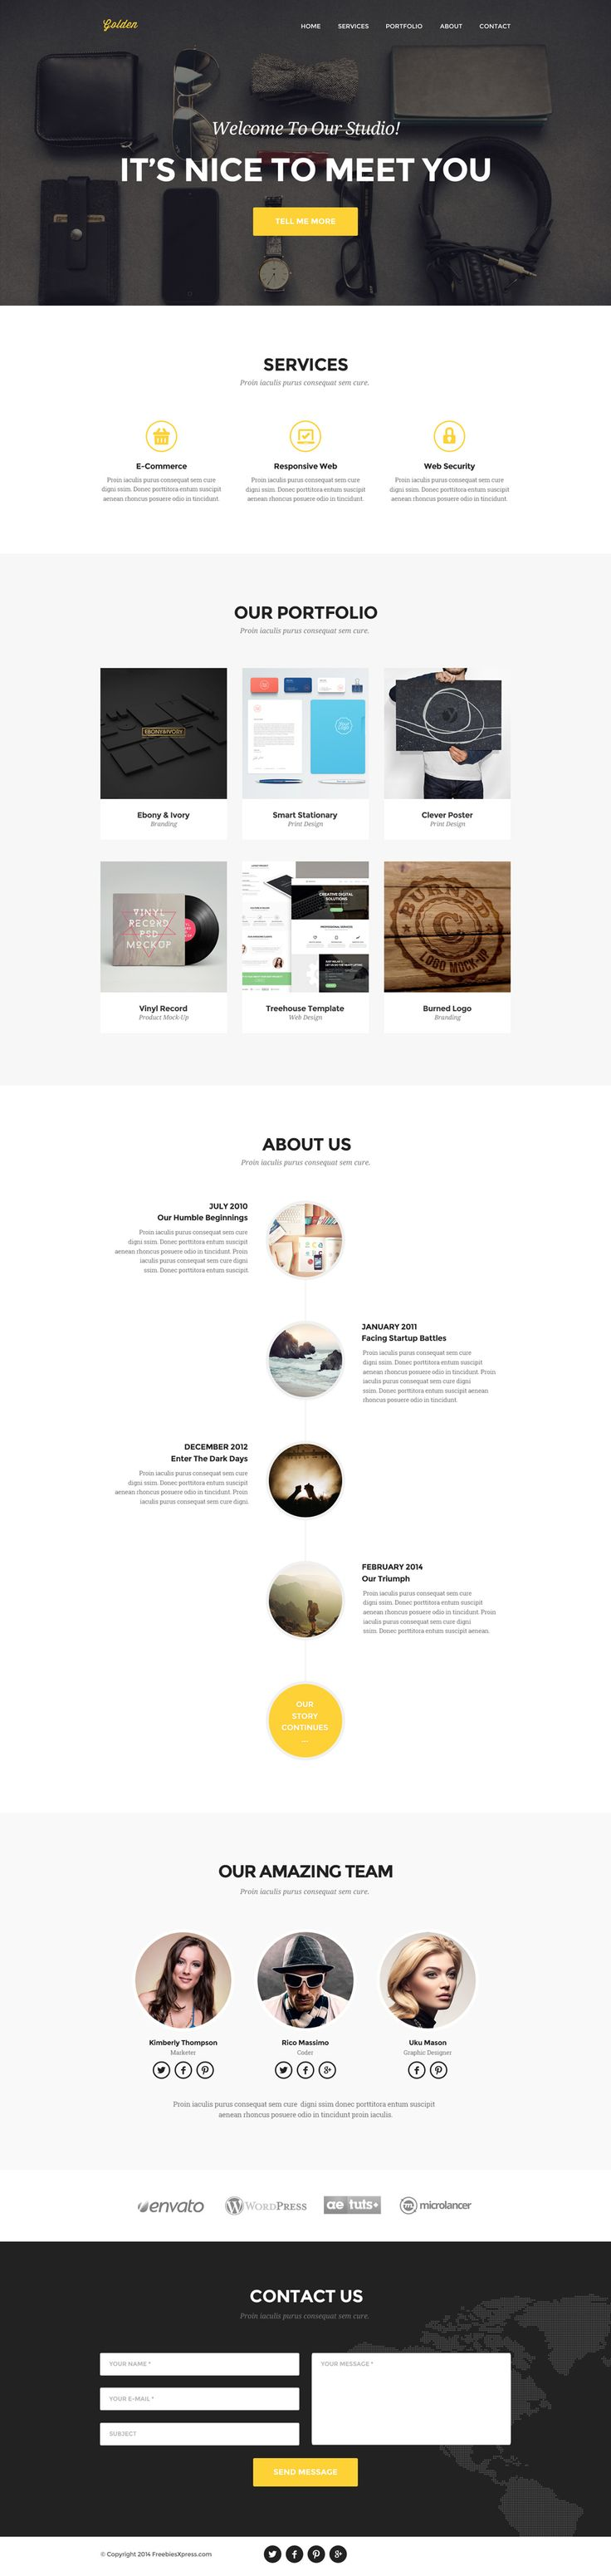 Golden - Free One Page PSD Theme